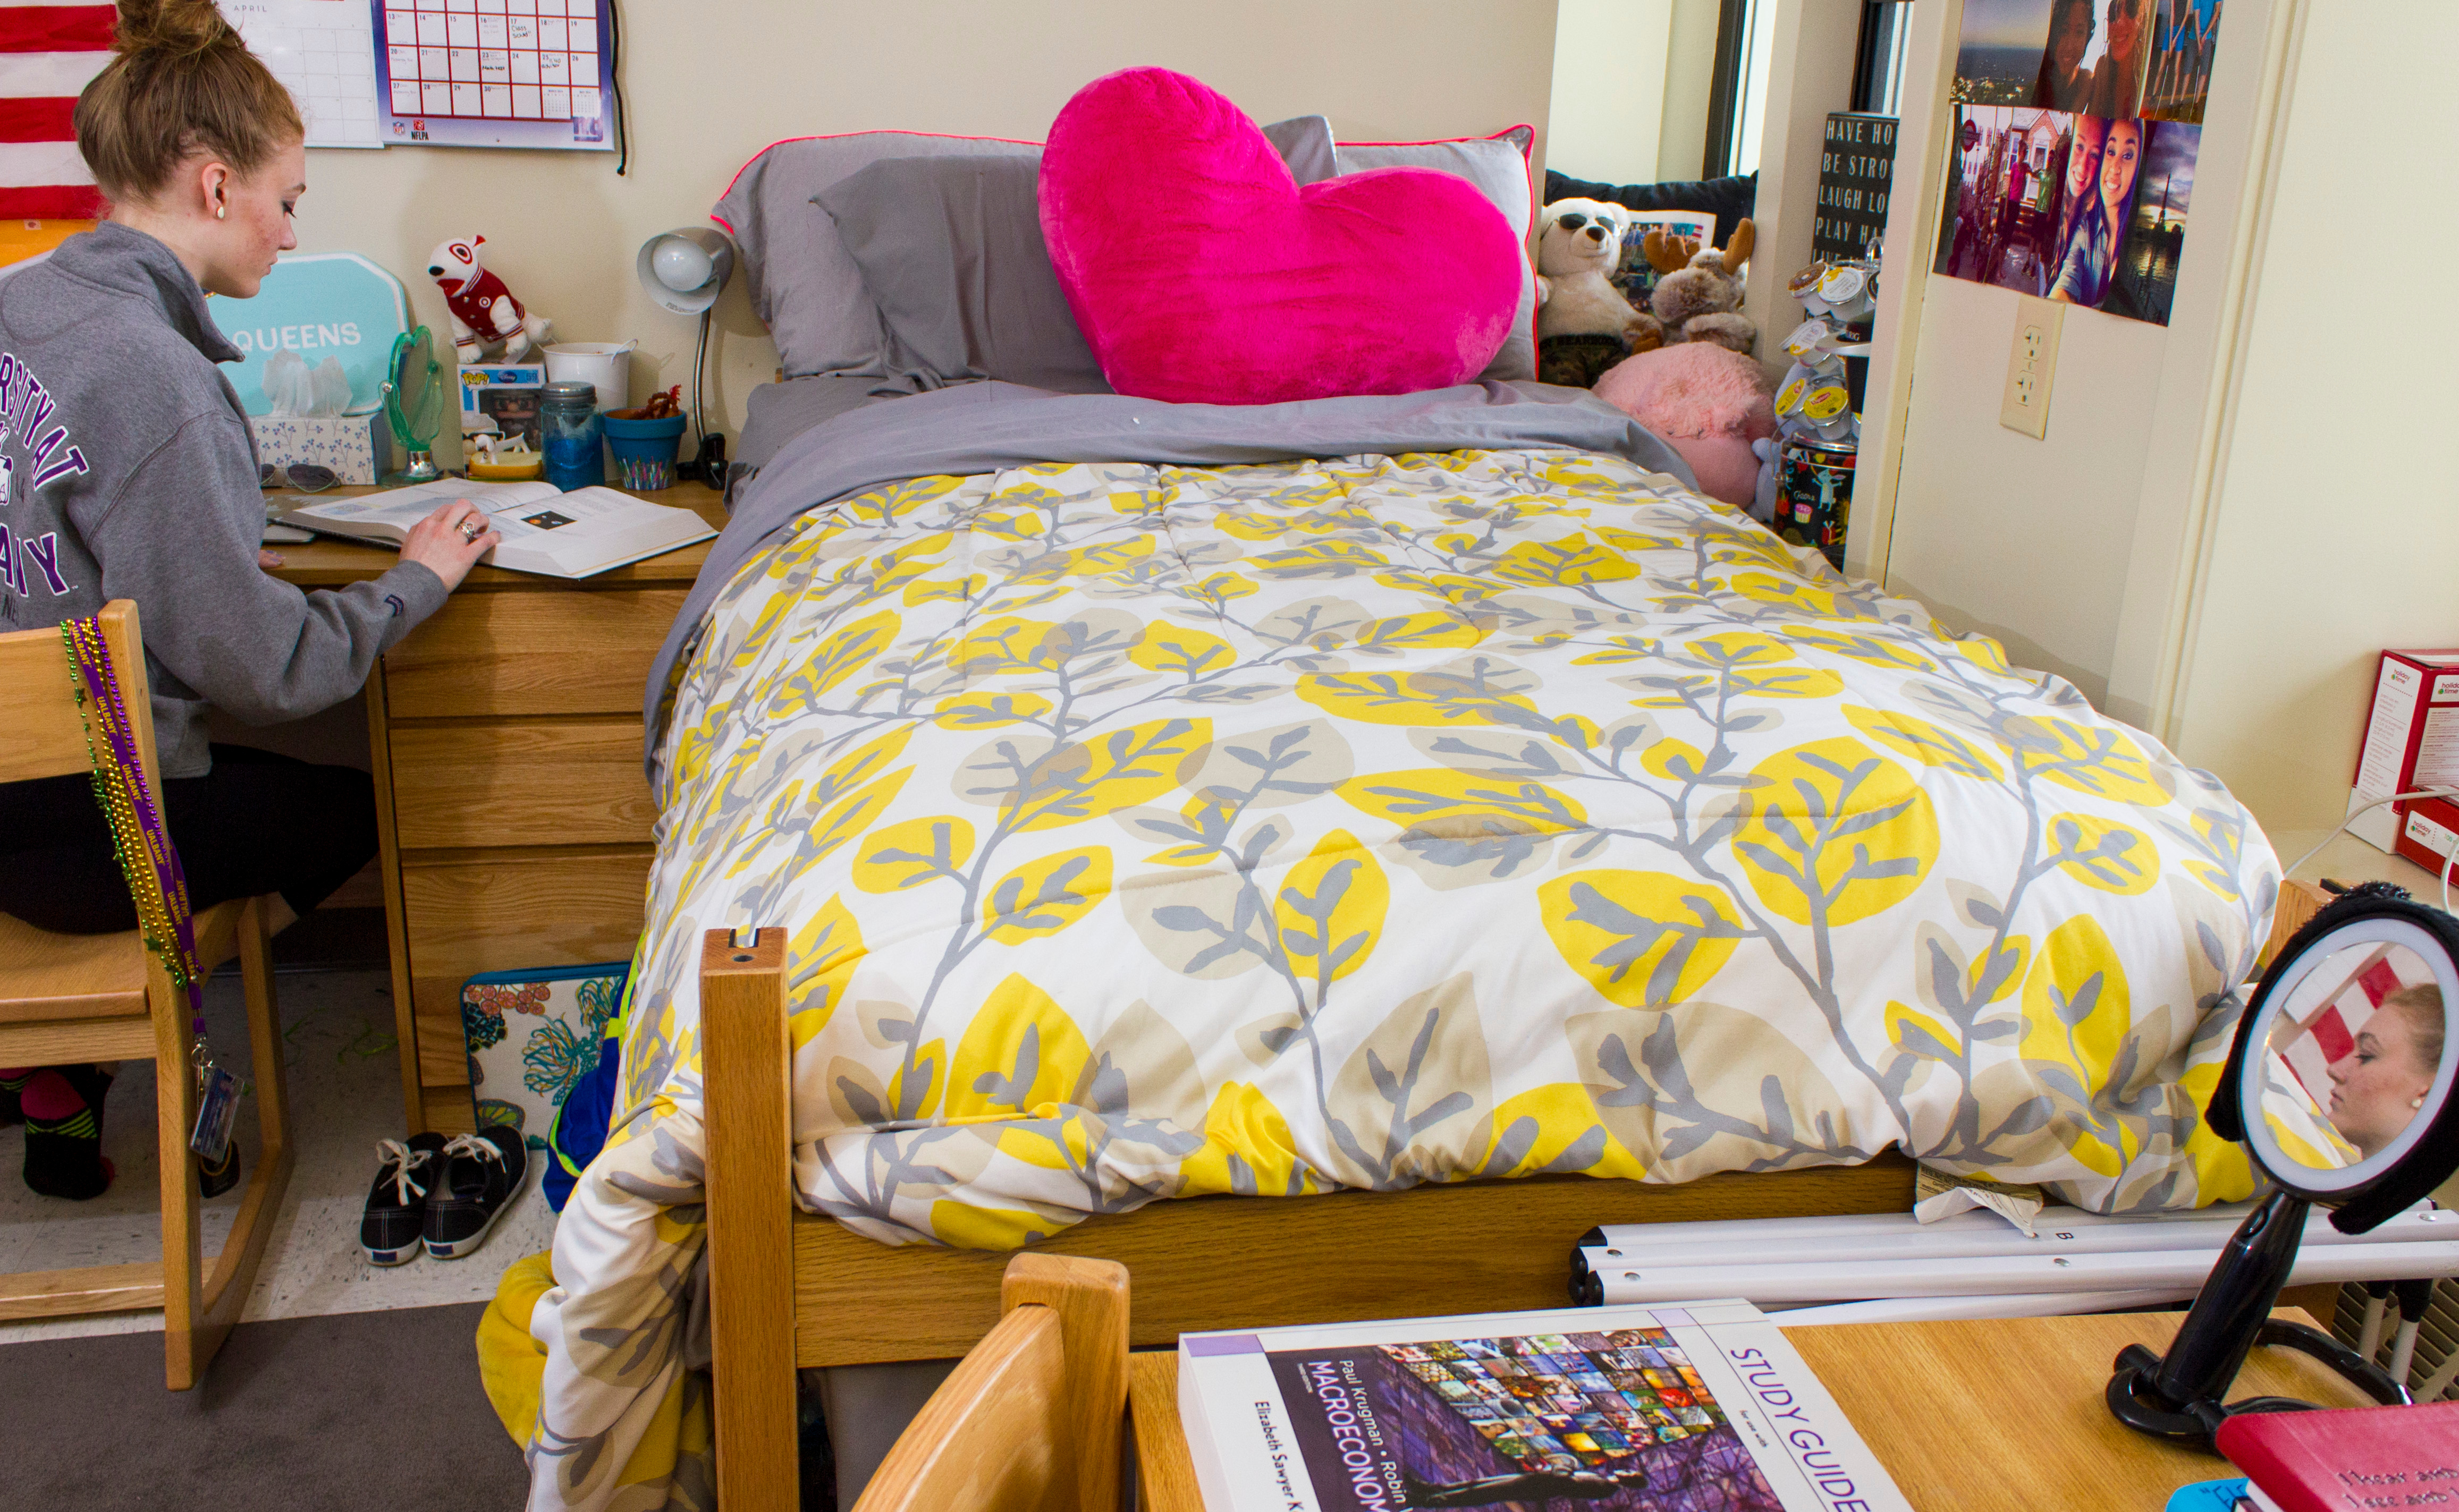 A student reads a textbook inside her residence hall bedroom